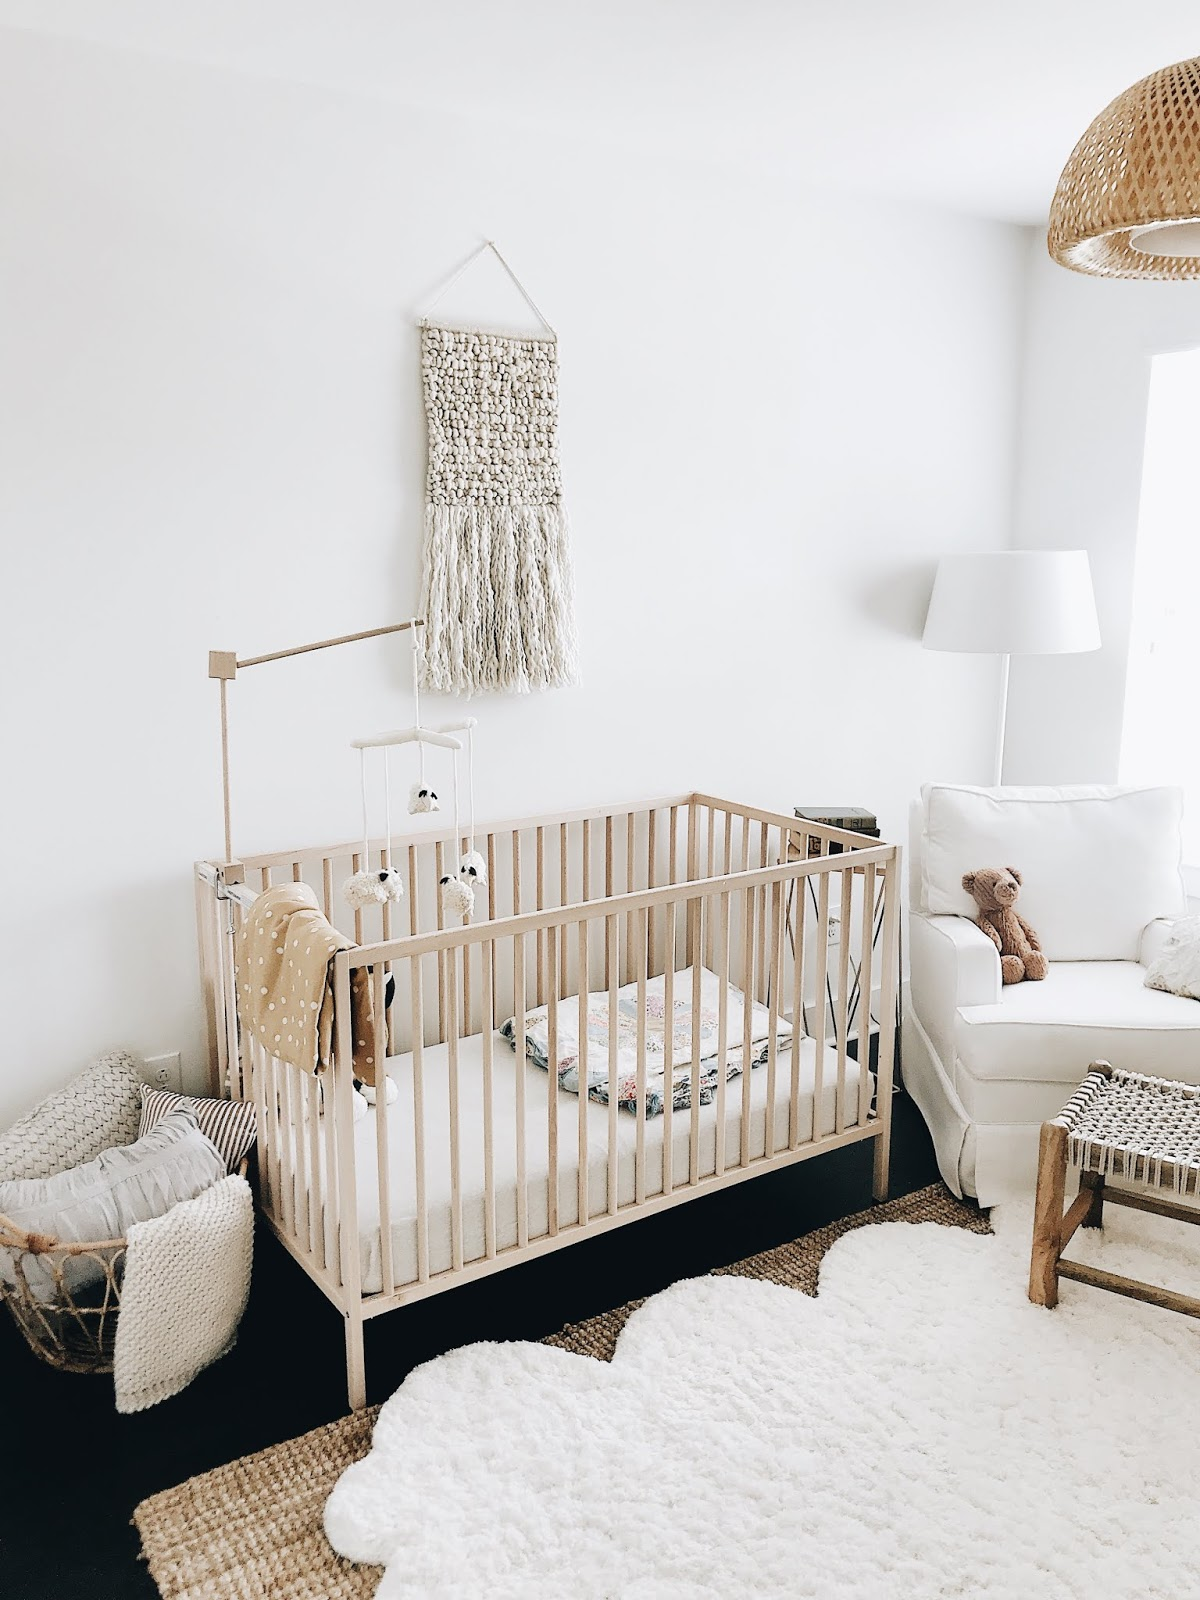 I Am So Excited To Share Nash S Finished Nursery We Went With A Neutral Color Scheme Birch Wood And Greenery Sentimental Pieces As Accents